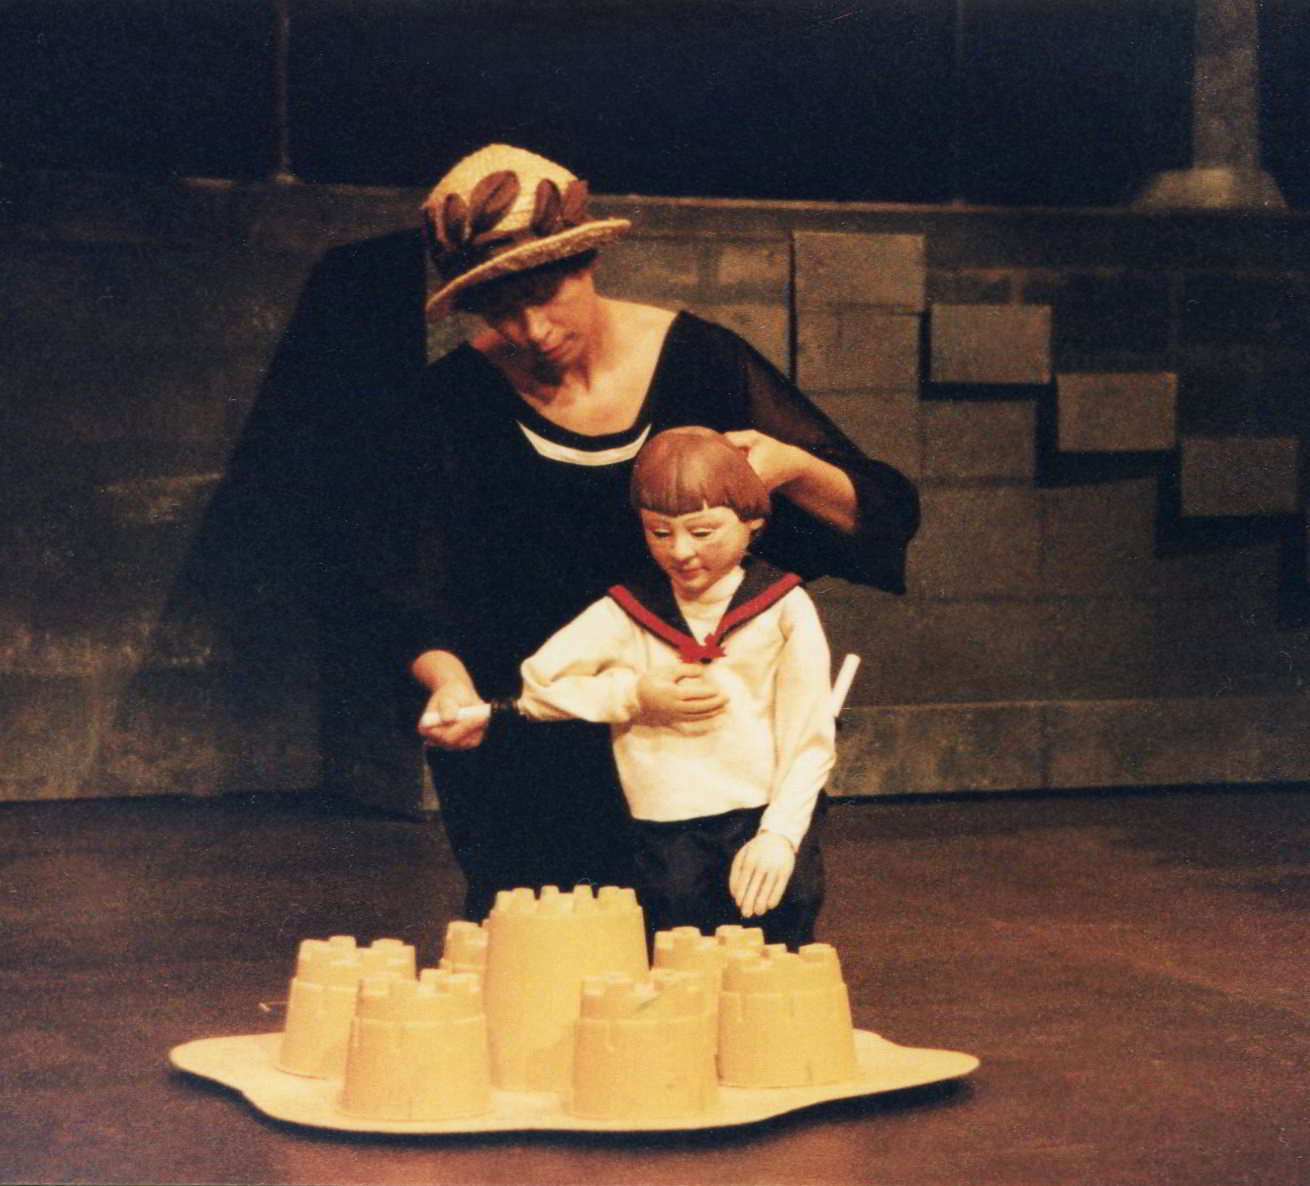 Ask for the Captain Handspan Theatre Actor as nanny helps puppet boy build sand castles